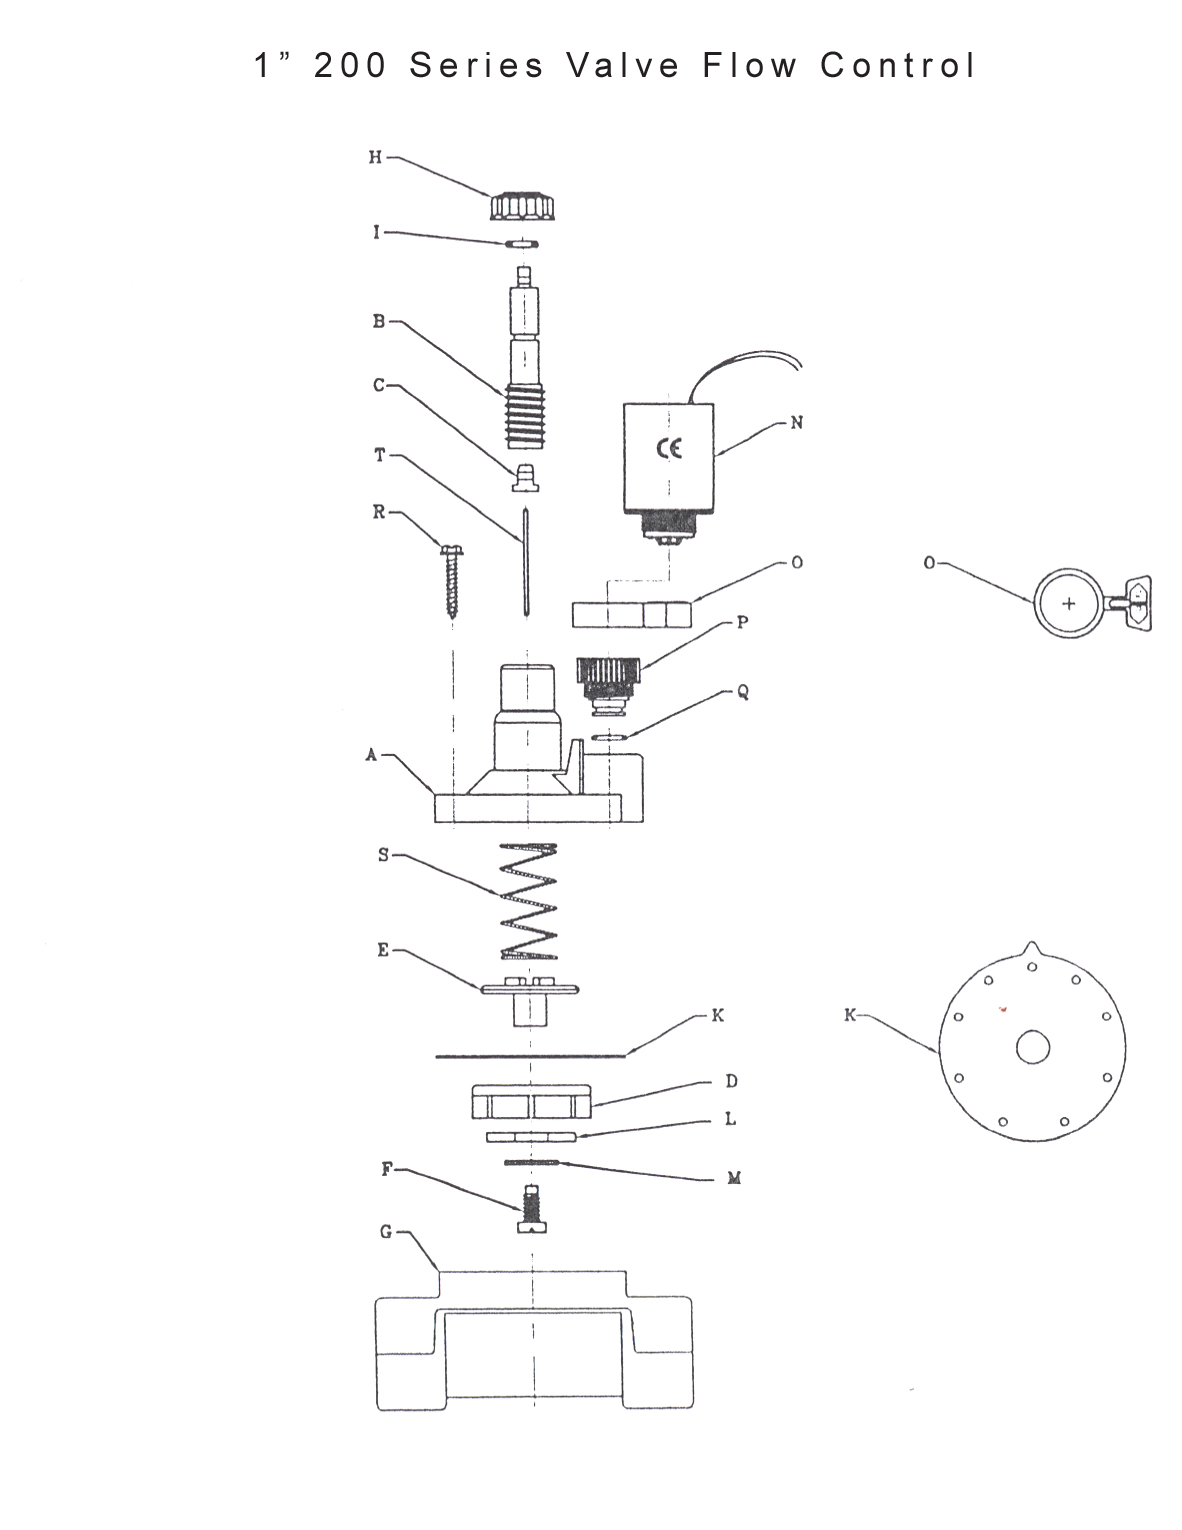 Hit Products Corporation Diagram Further Master Valve For Sprinkler Systems Wiring 200 Series 1 Inch Flow Control